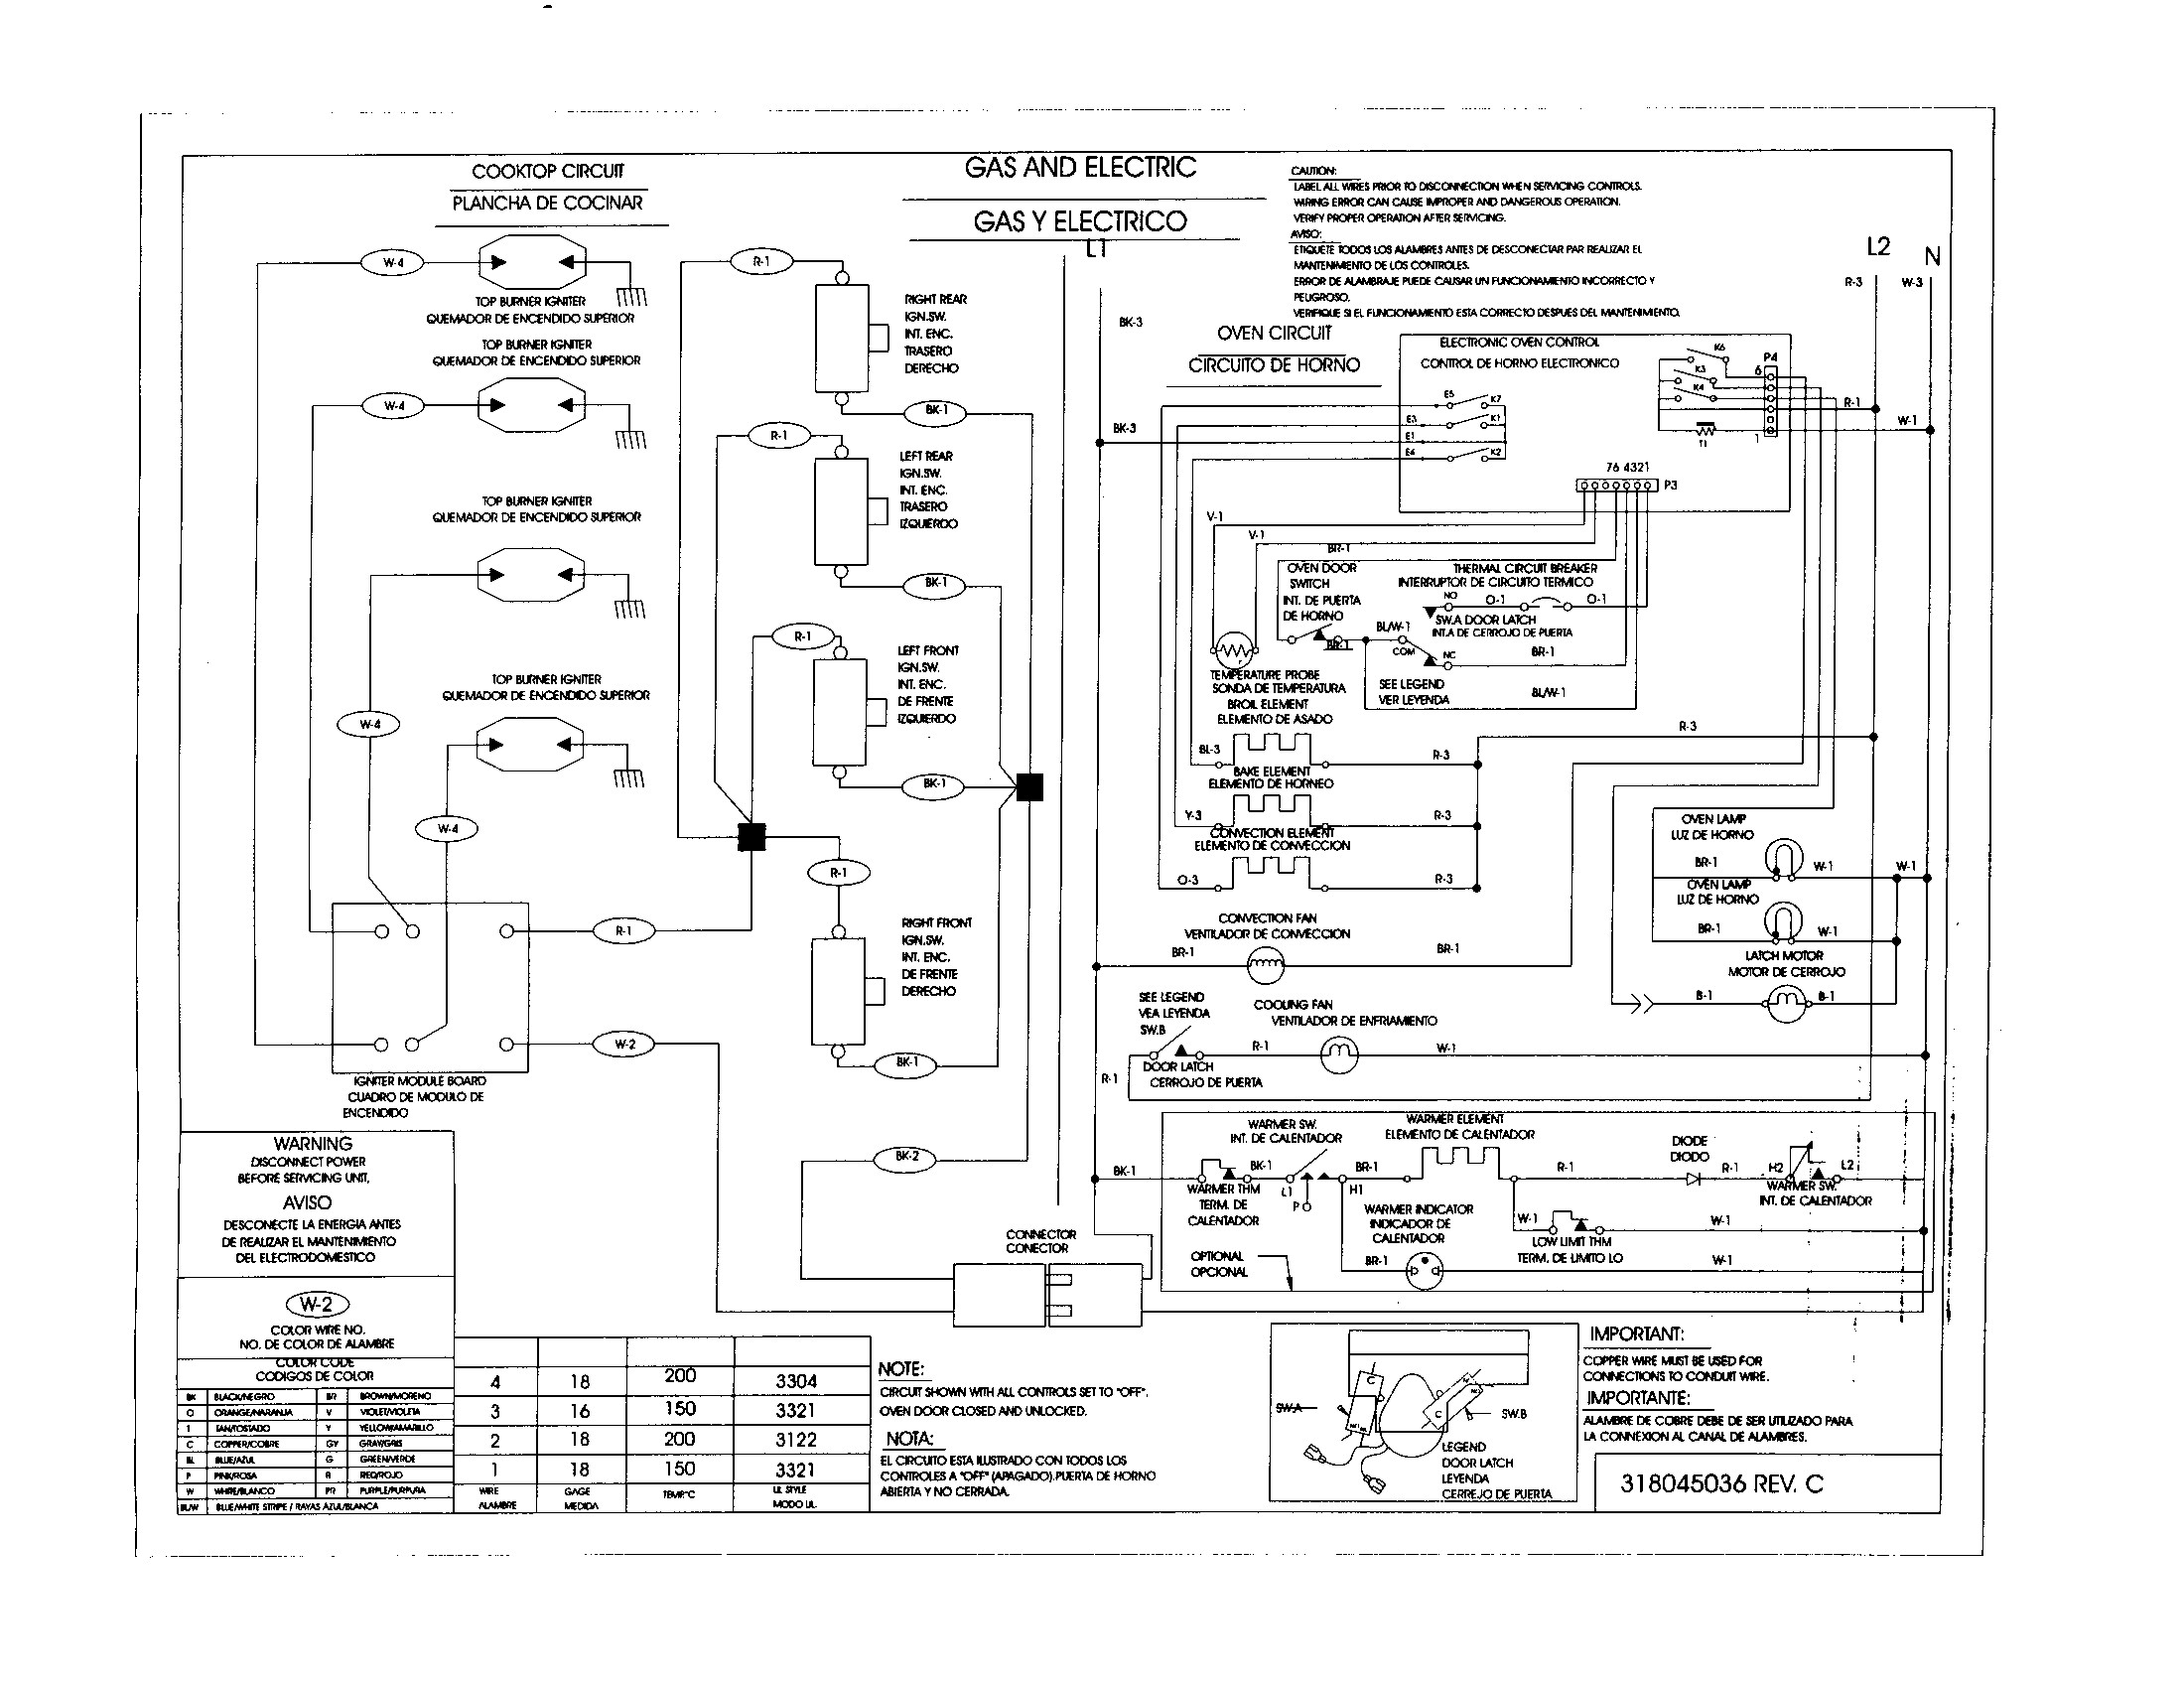 diagram range wiring whirlpool sf362lxsy0 example electrical rh olkha co Whirlpool Oven Control Board Rebuild Whirlpool Oven Parts Diagram